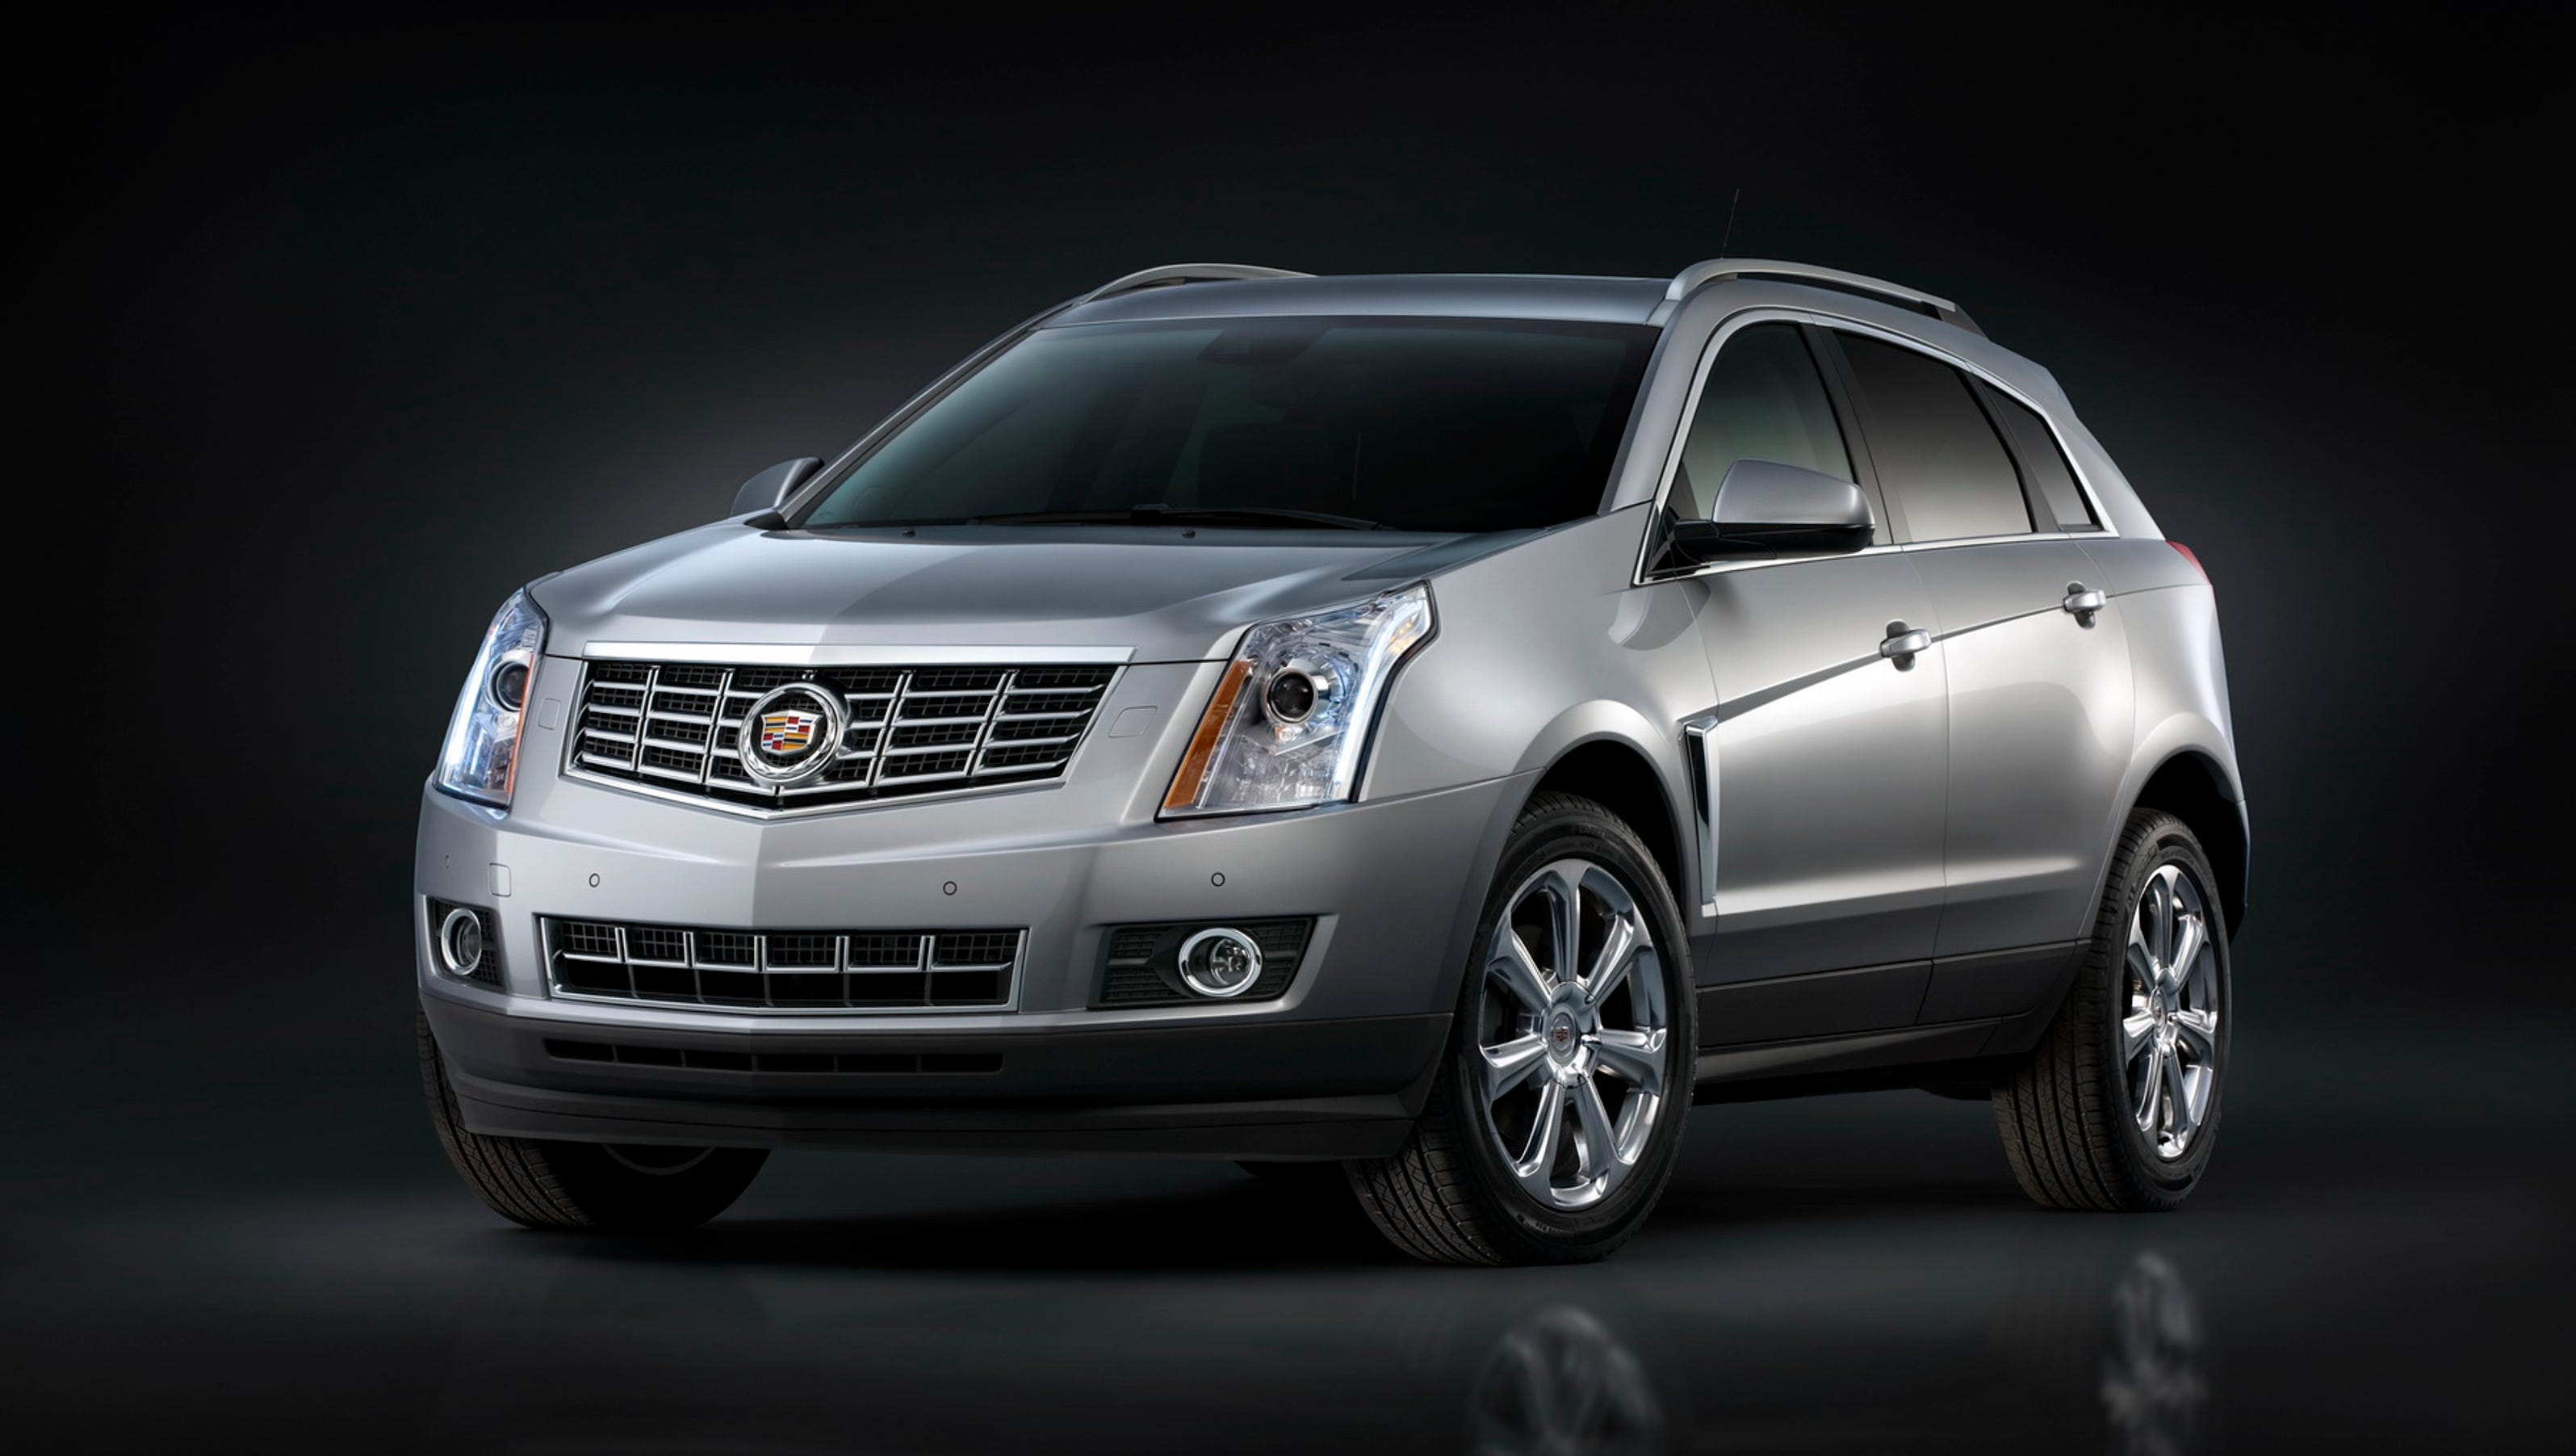 luxury safety performance 2015 cadillac srx crossover. Black Bedroom Furniture Sets. Home Design Ideas